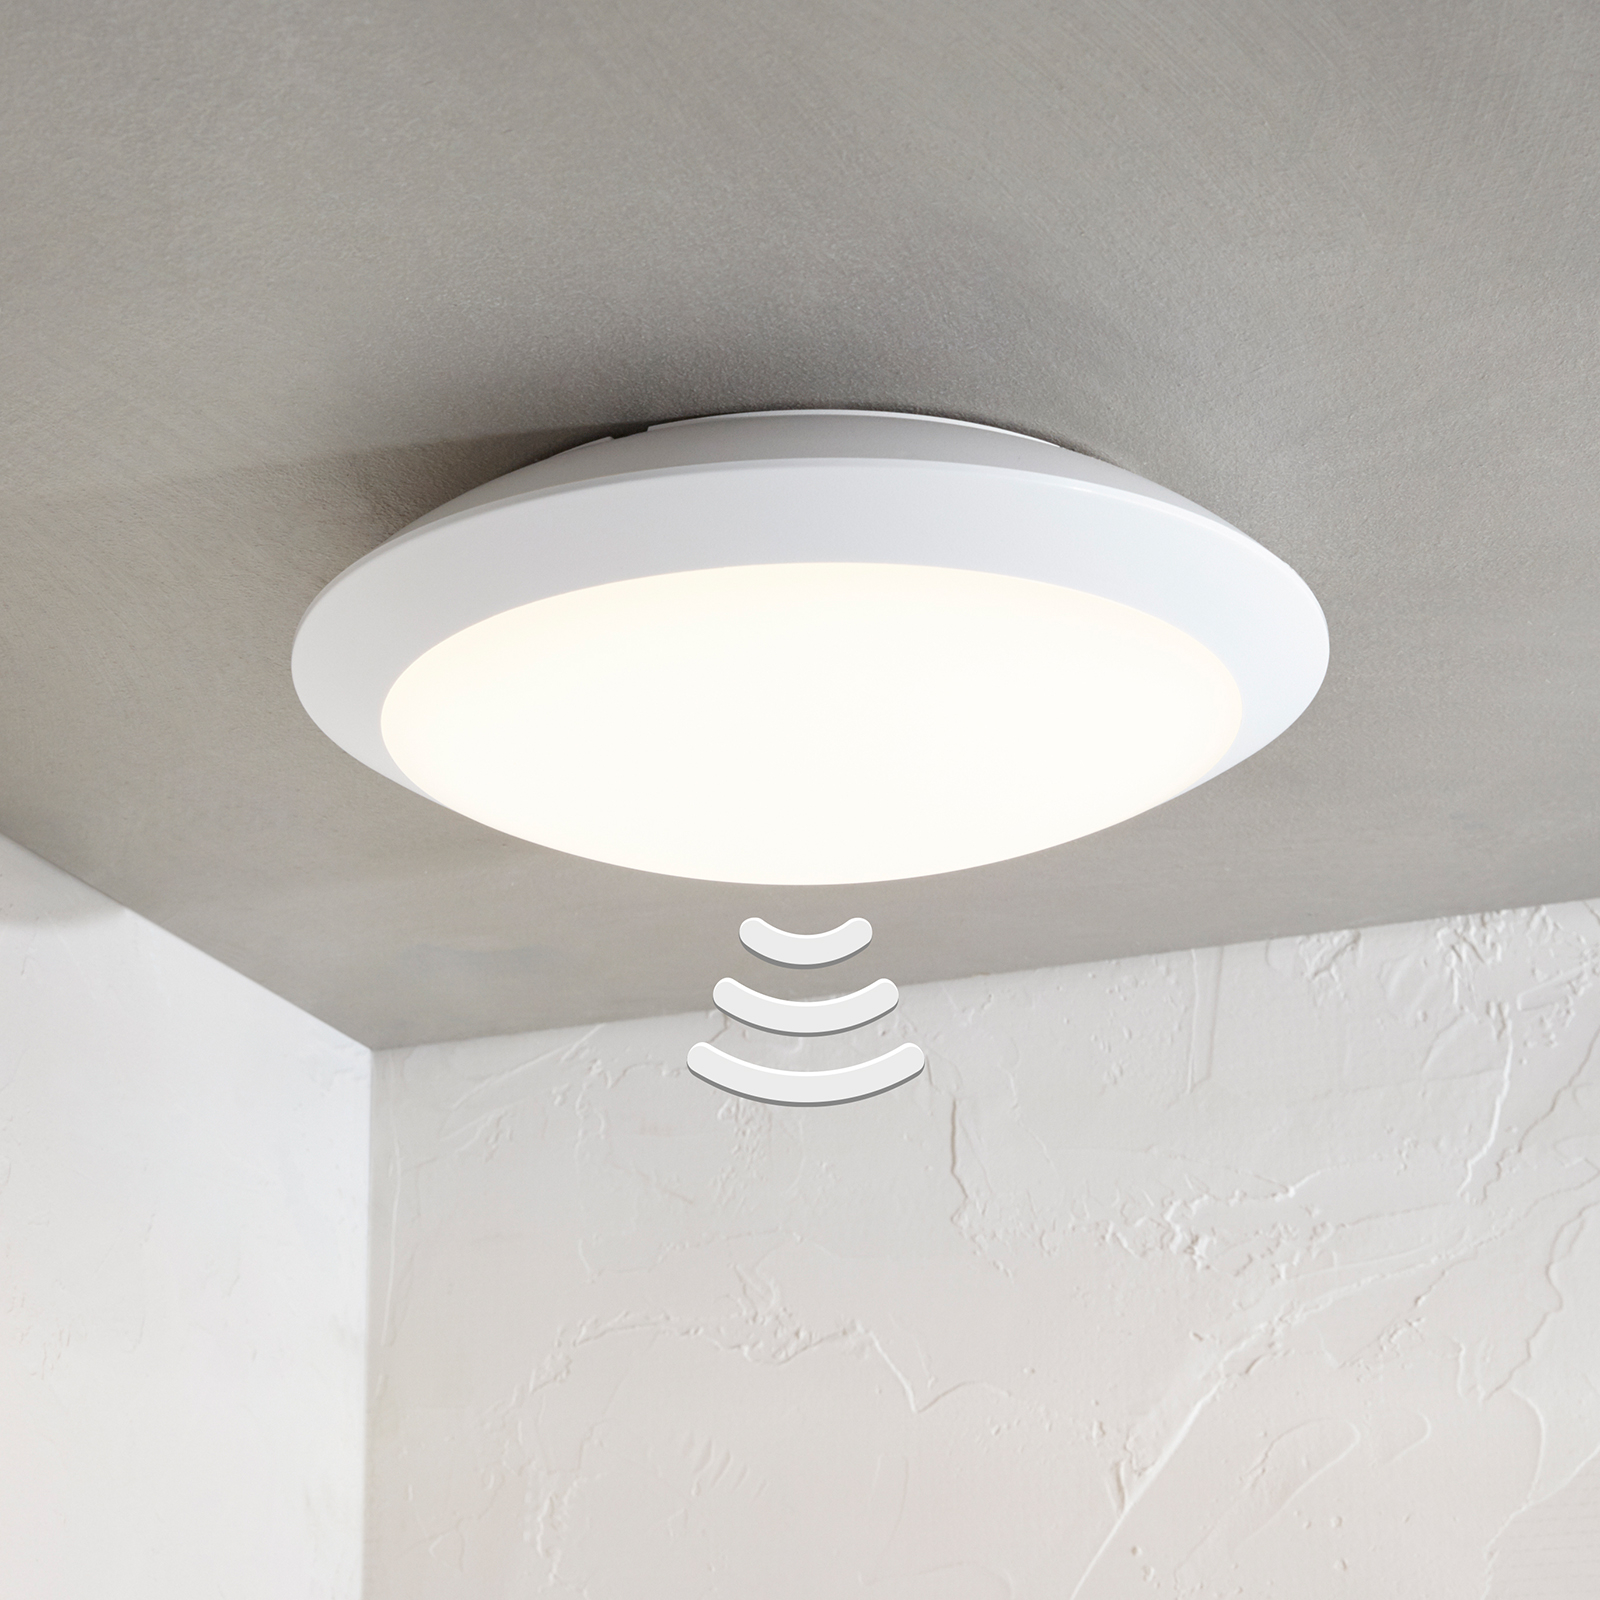 Naira LED outdoor ceiling lamp, white, with sensor_9949021_1